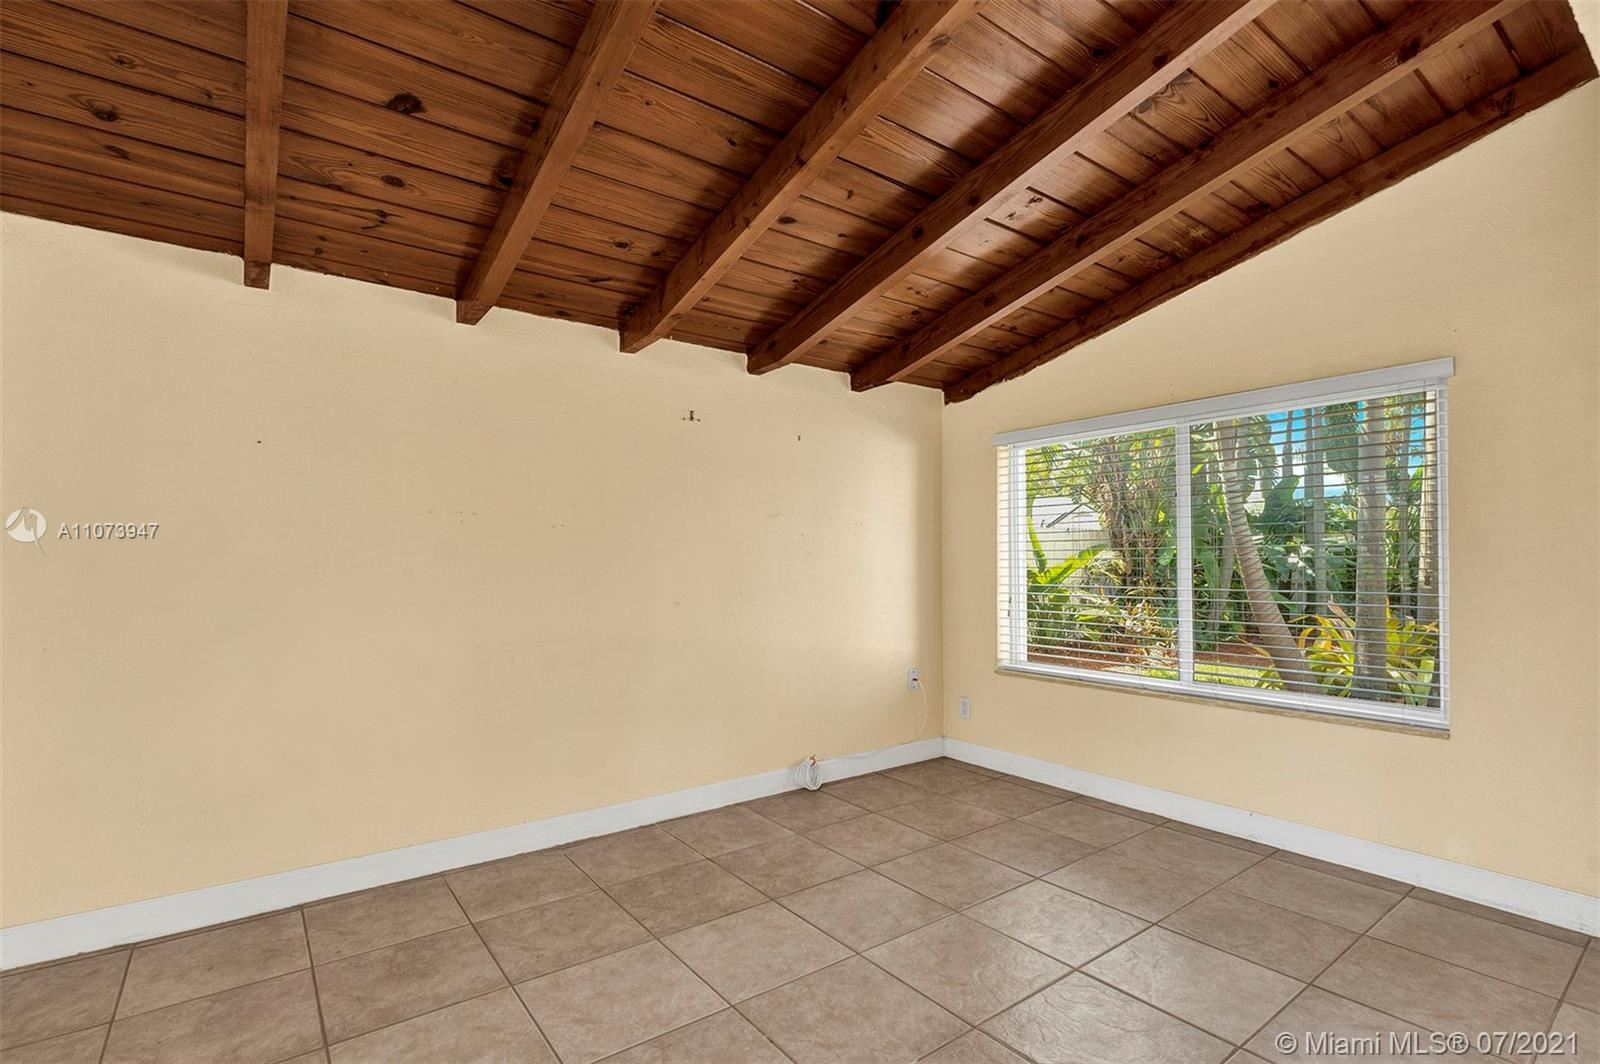 Photo of 3116 Hayes St, Hollywood, FL 33021 (MLS # A11073947)